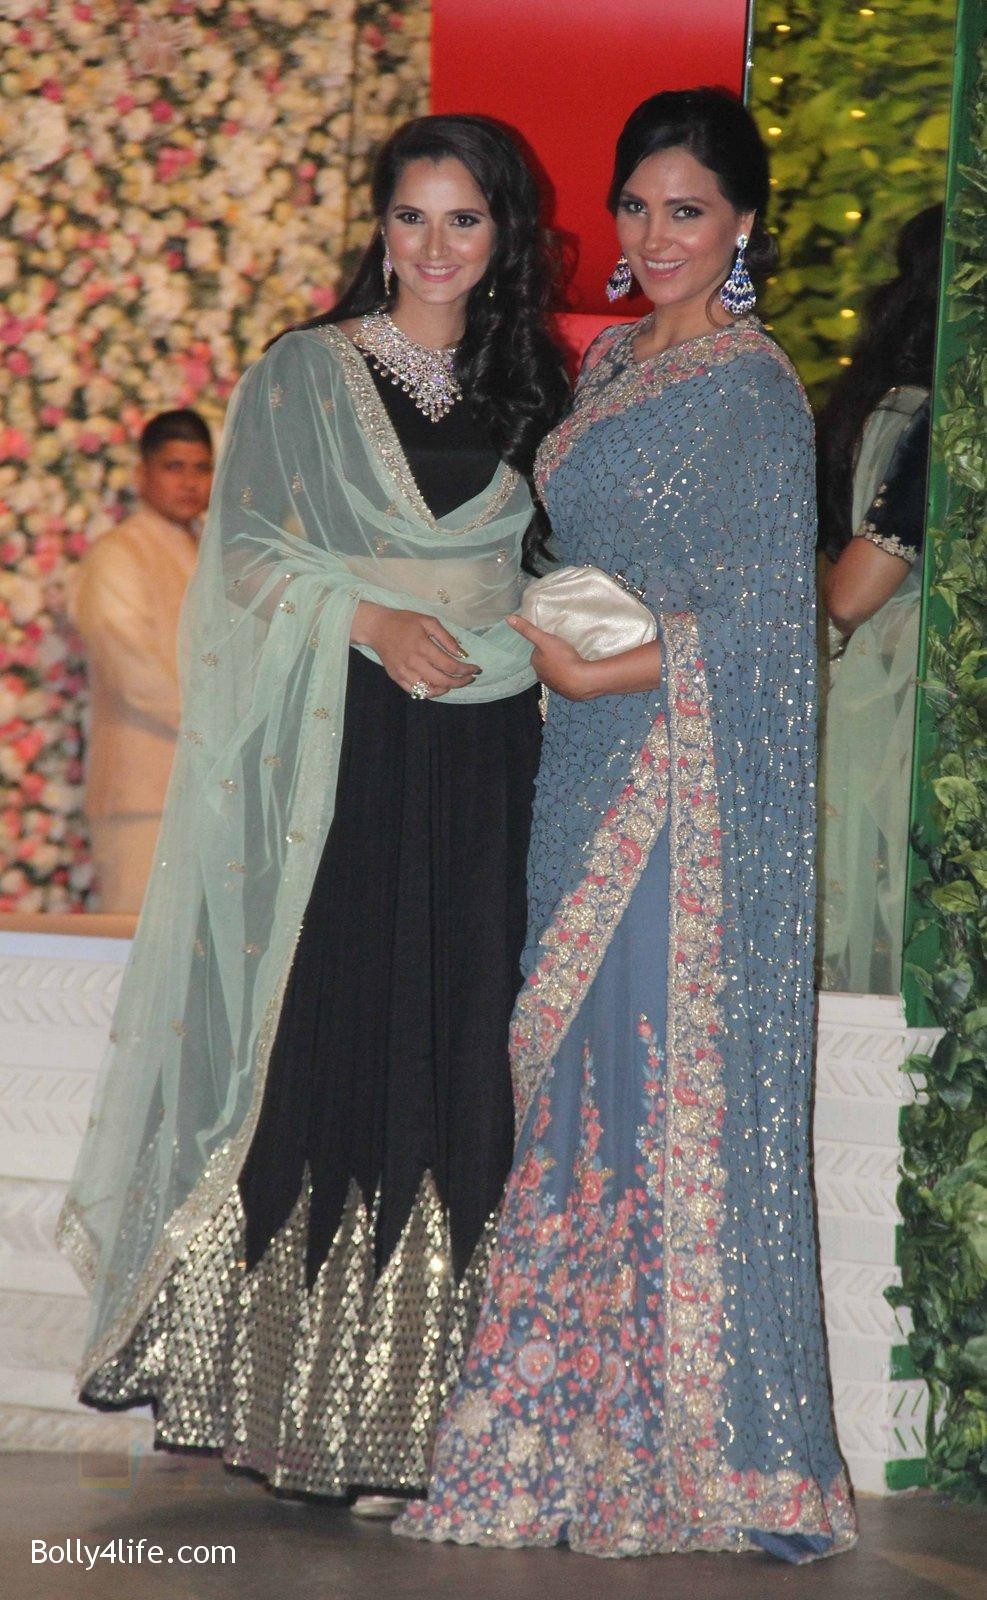 Sania-Mirza-Lara-Dutta-at-the-Ambanis-wedding-party-of-their-niece-Isheta-Salgaoncar-2.jpg